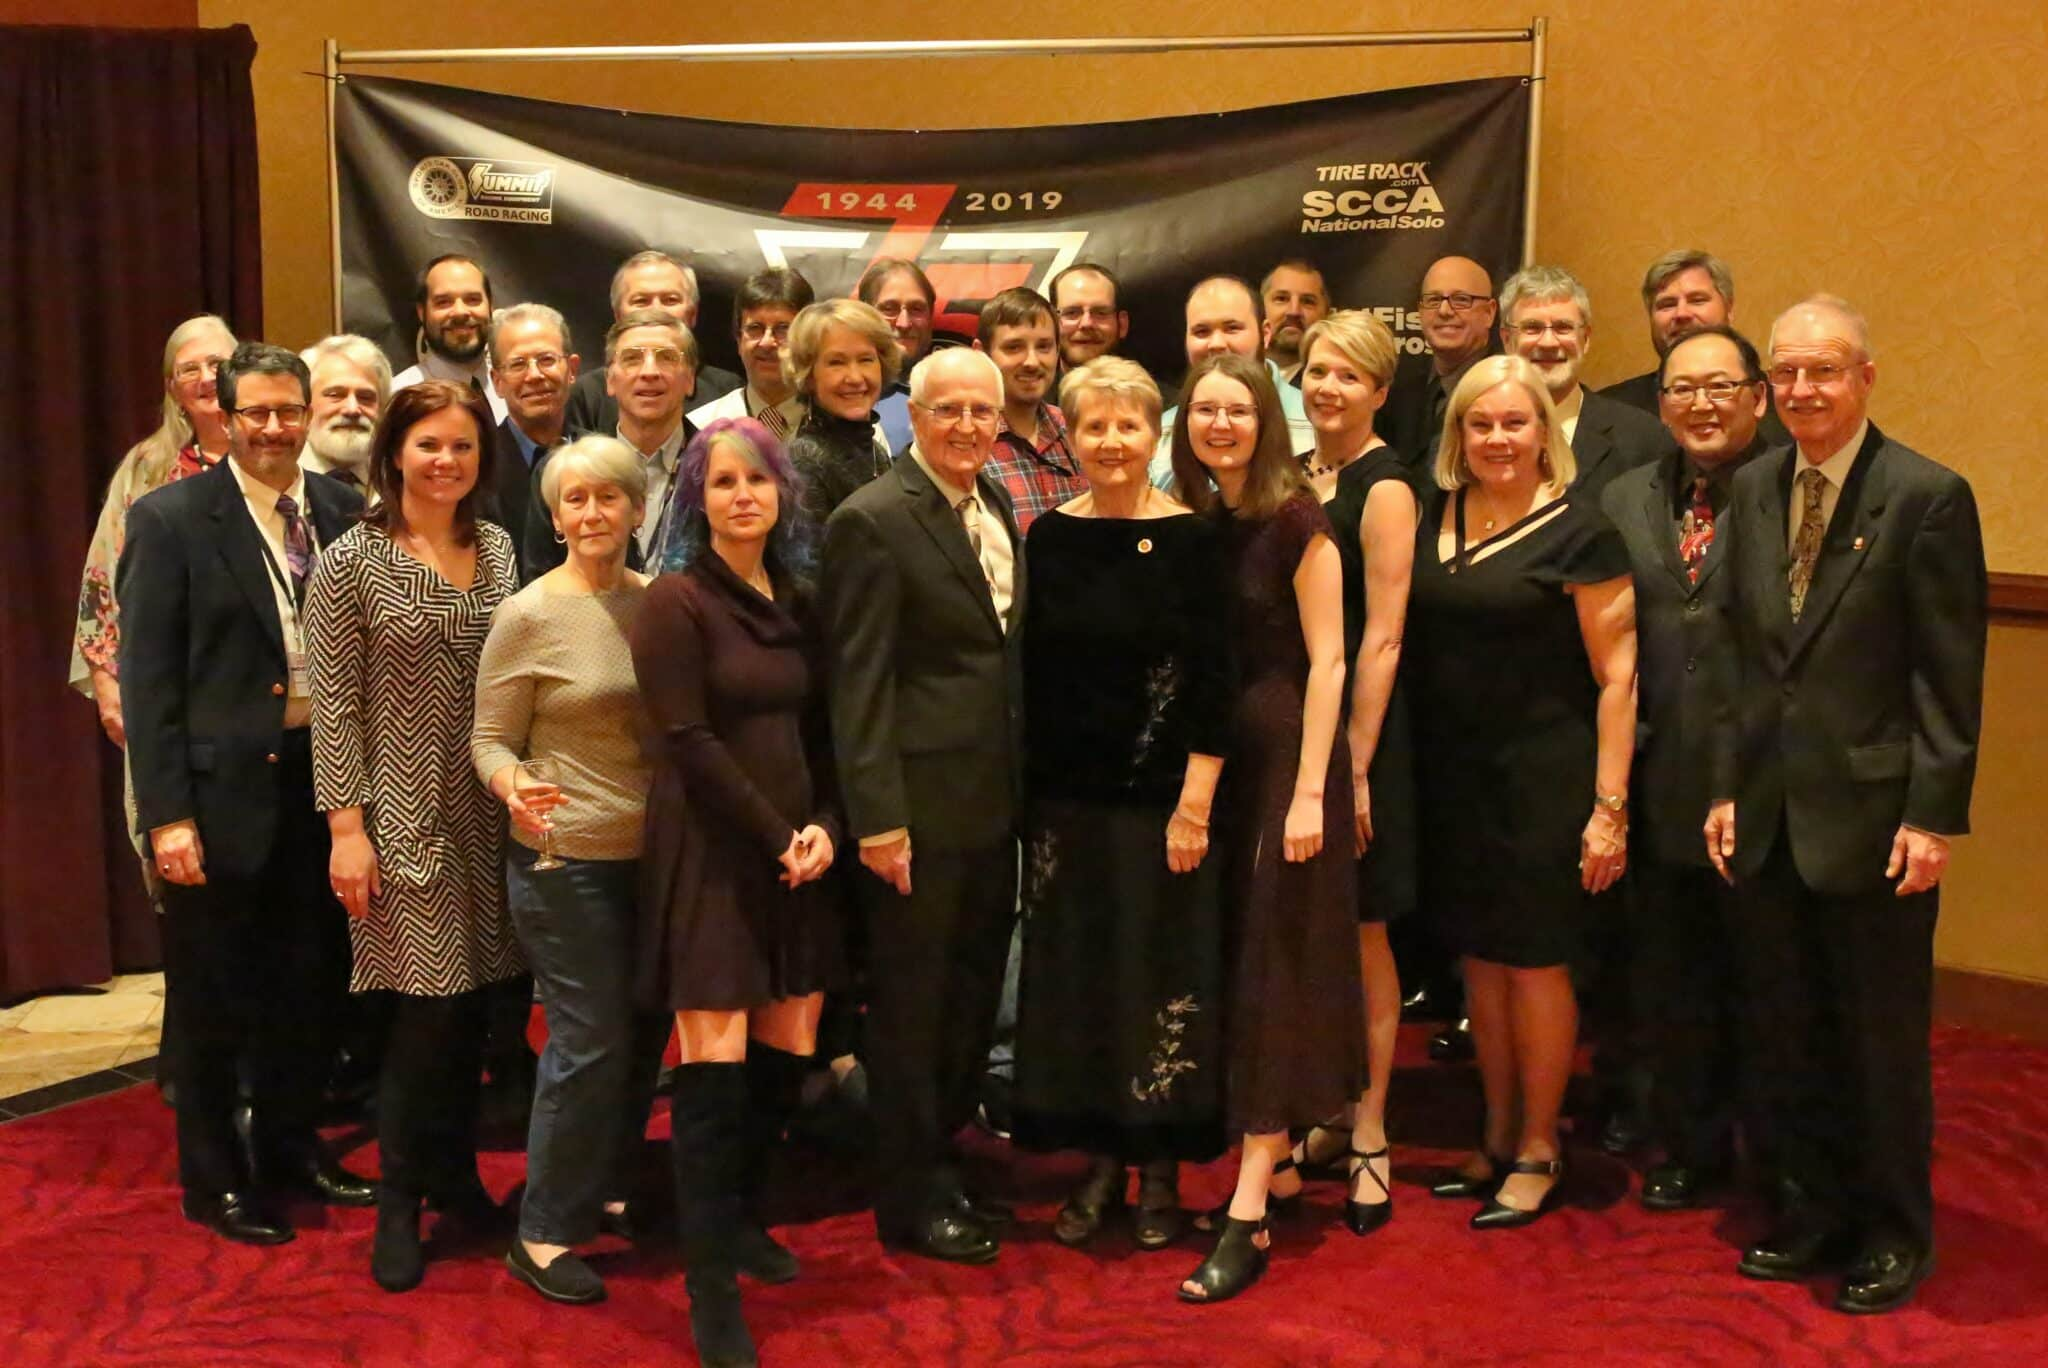 SCCA National Convention: What We Learned